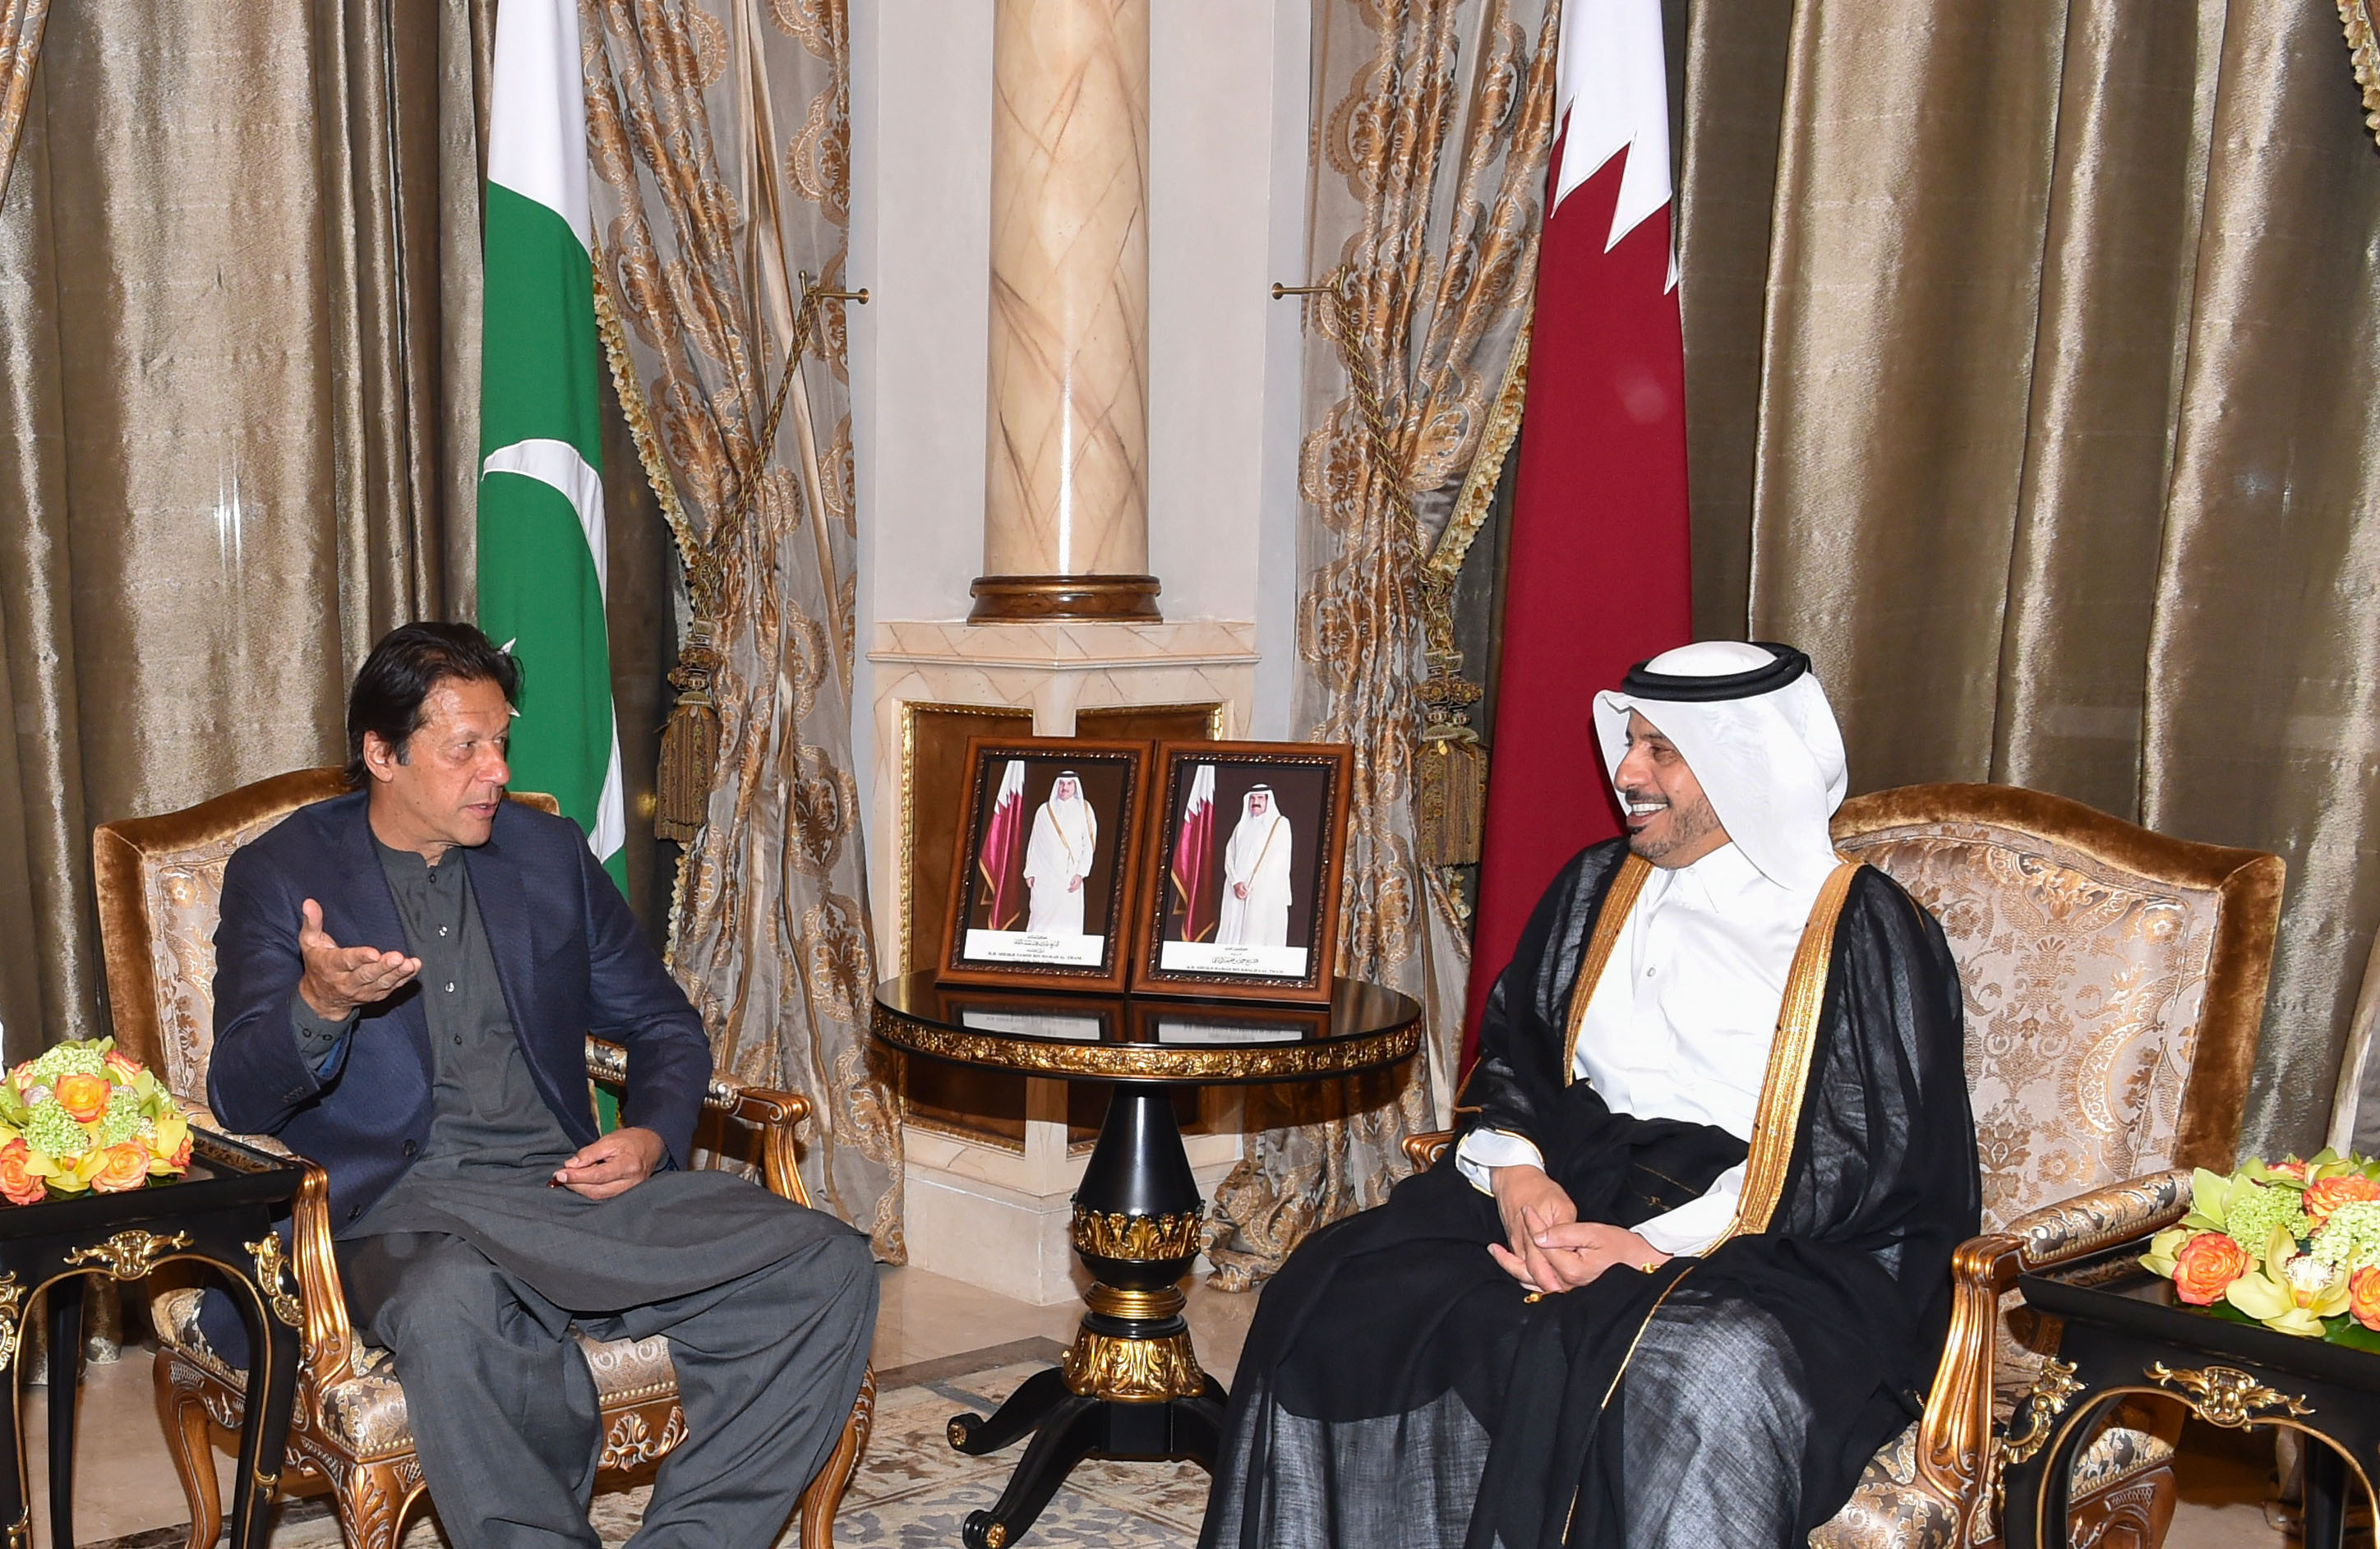 Pakistani Prime Minister Imran Khan Arrived in Doha, Attends Dinner Hosted by Prime Minister of Qatar